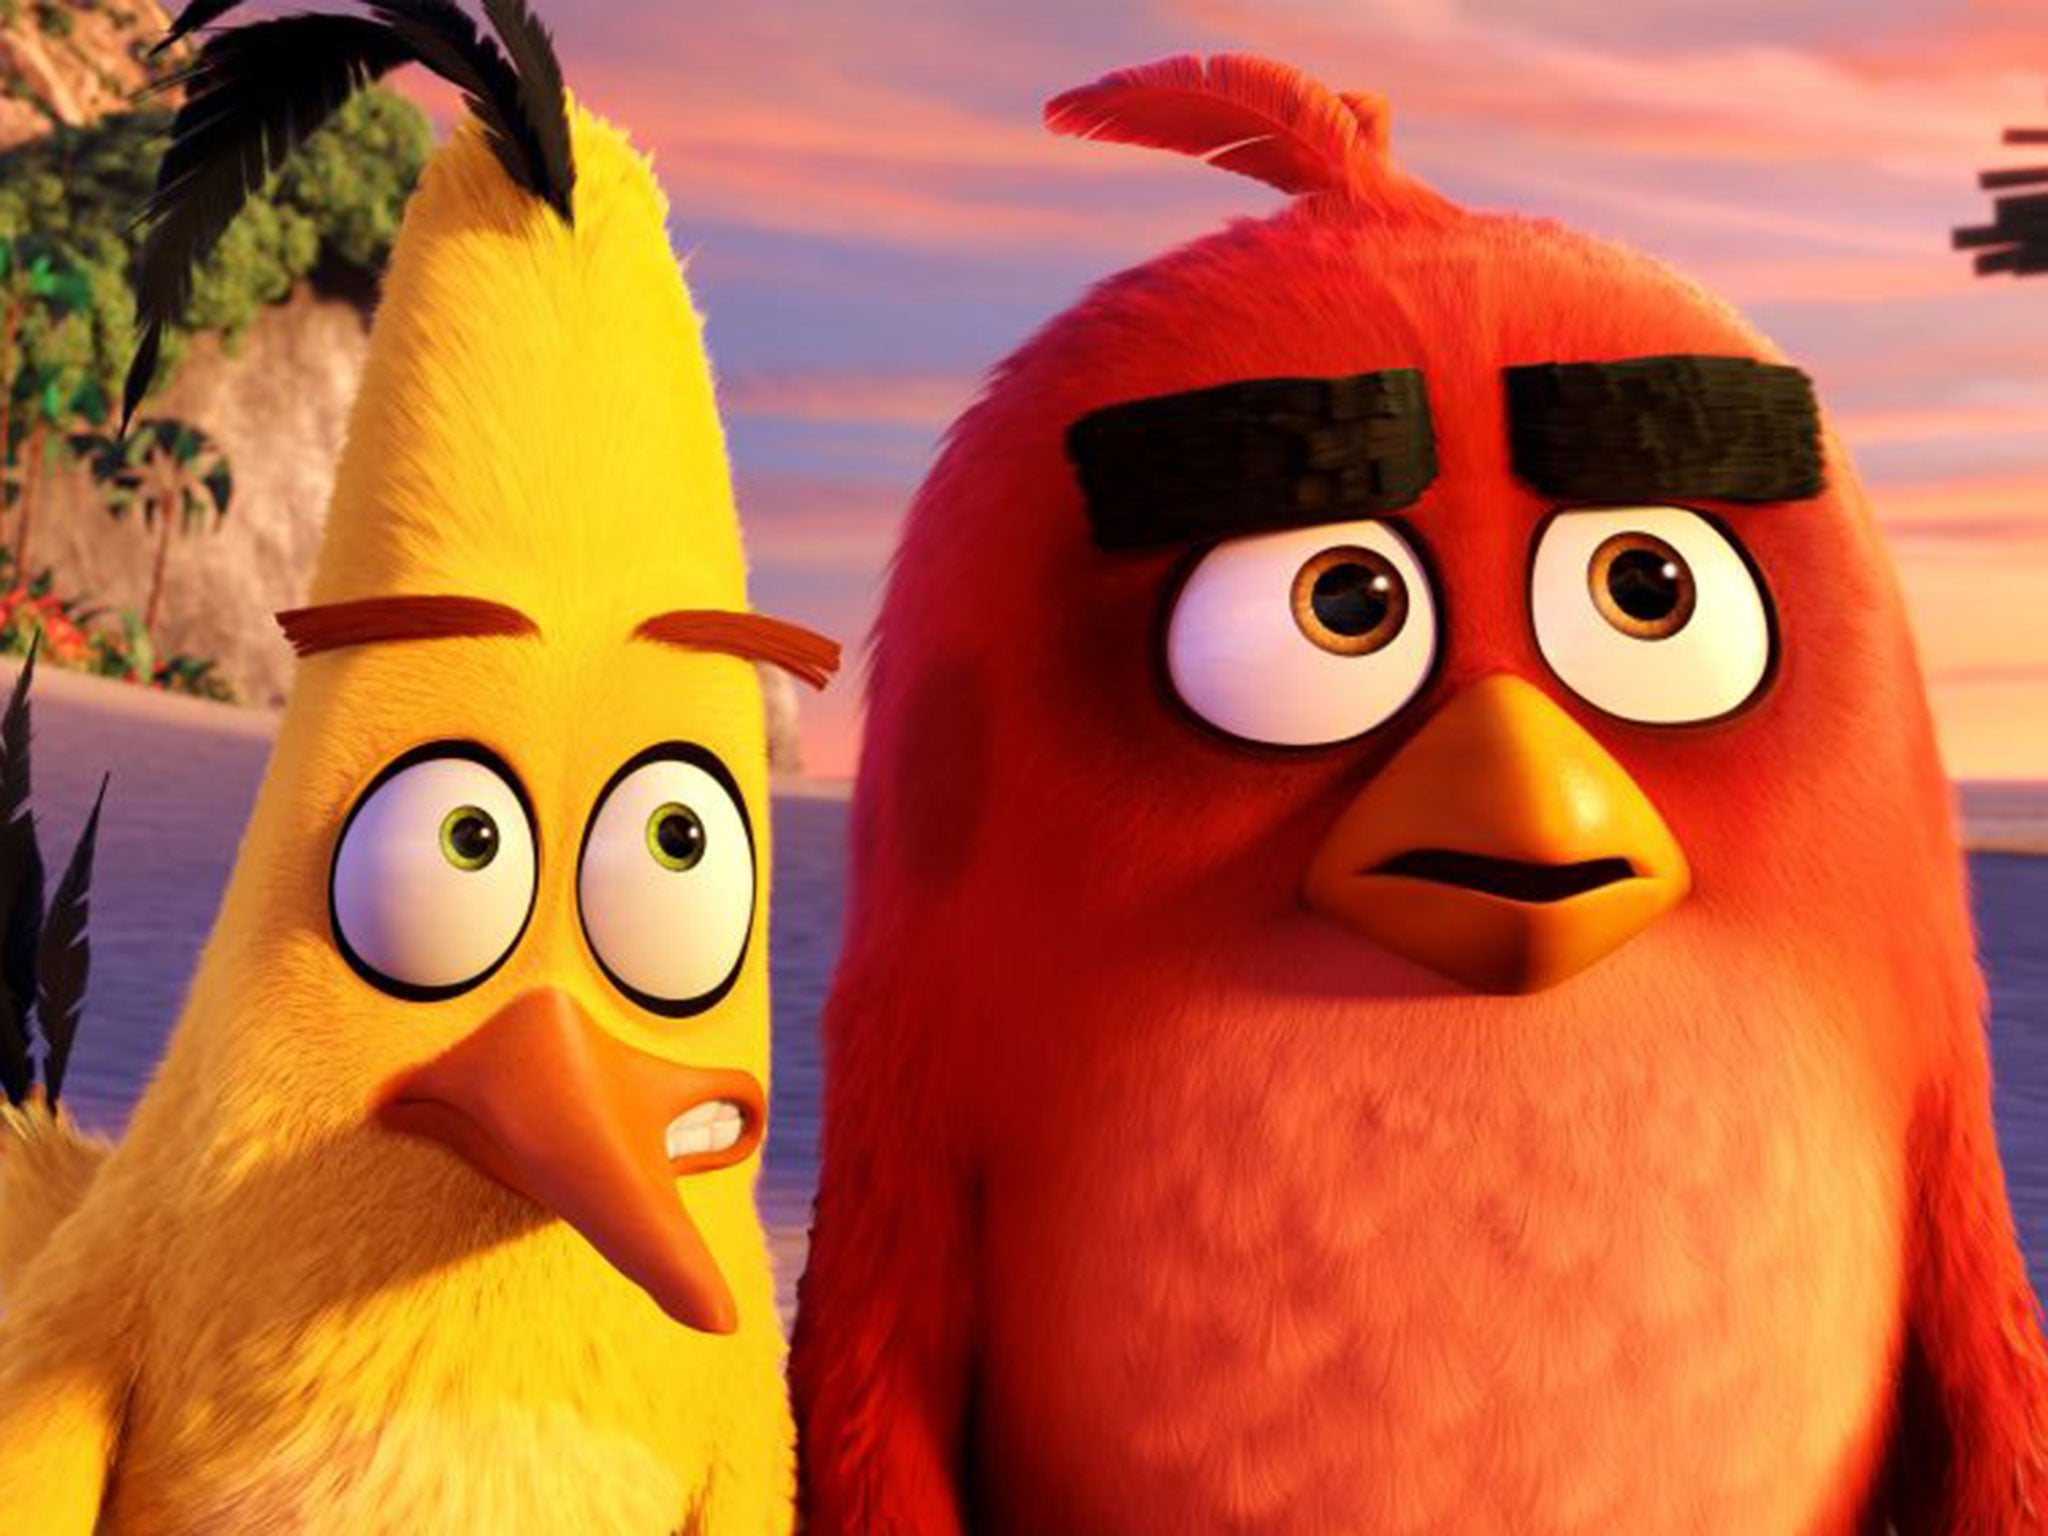 Angry Birds Developer to Open Video Game Studio in London Despite Brexit Fears